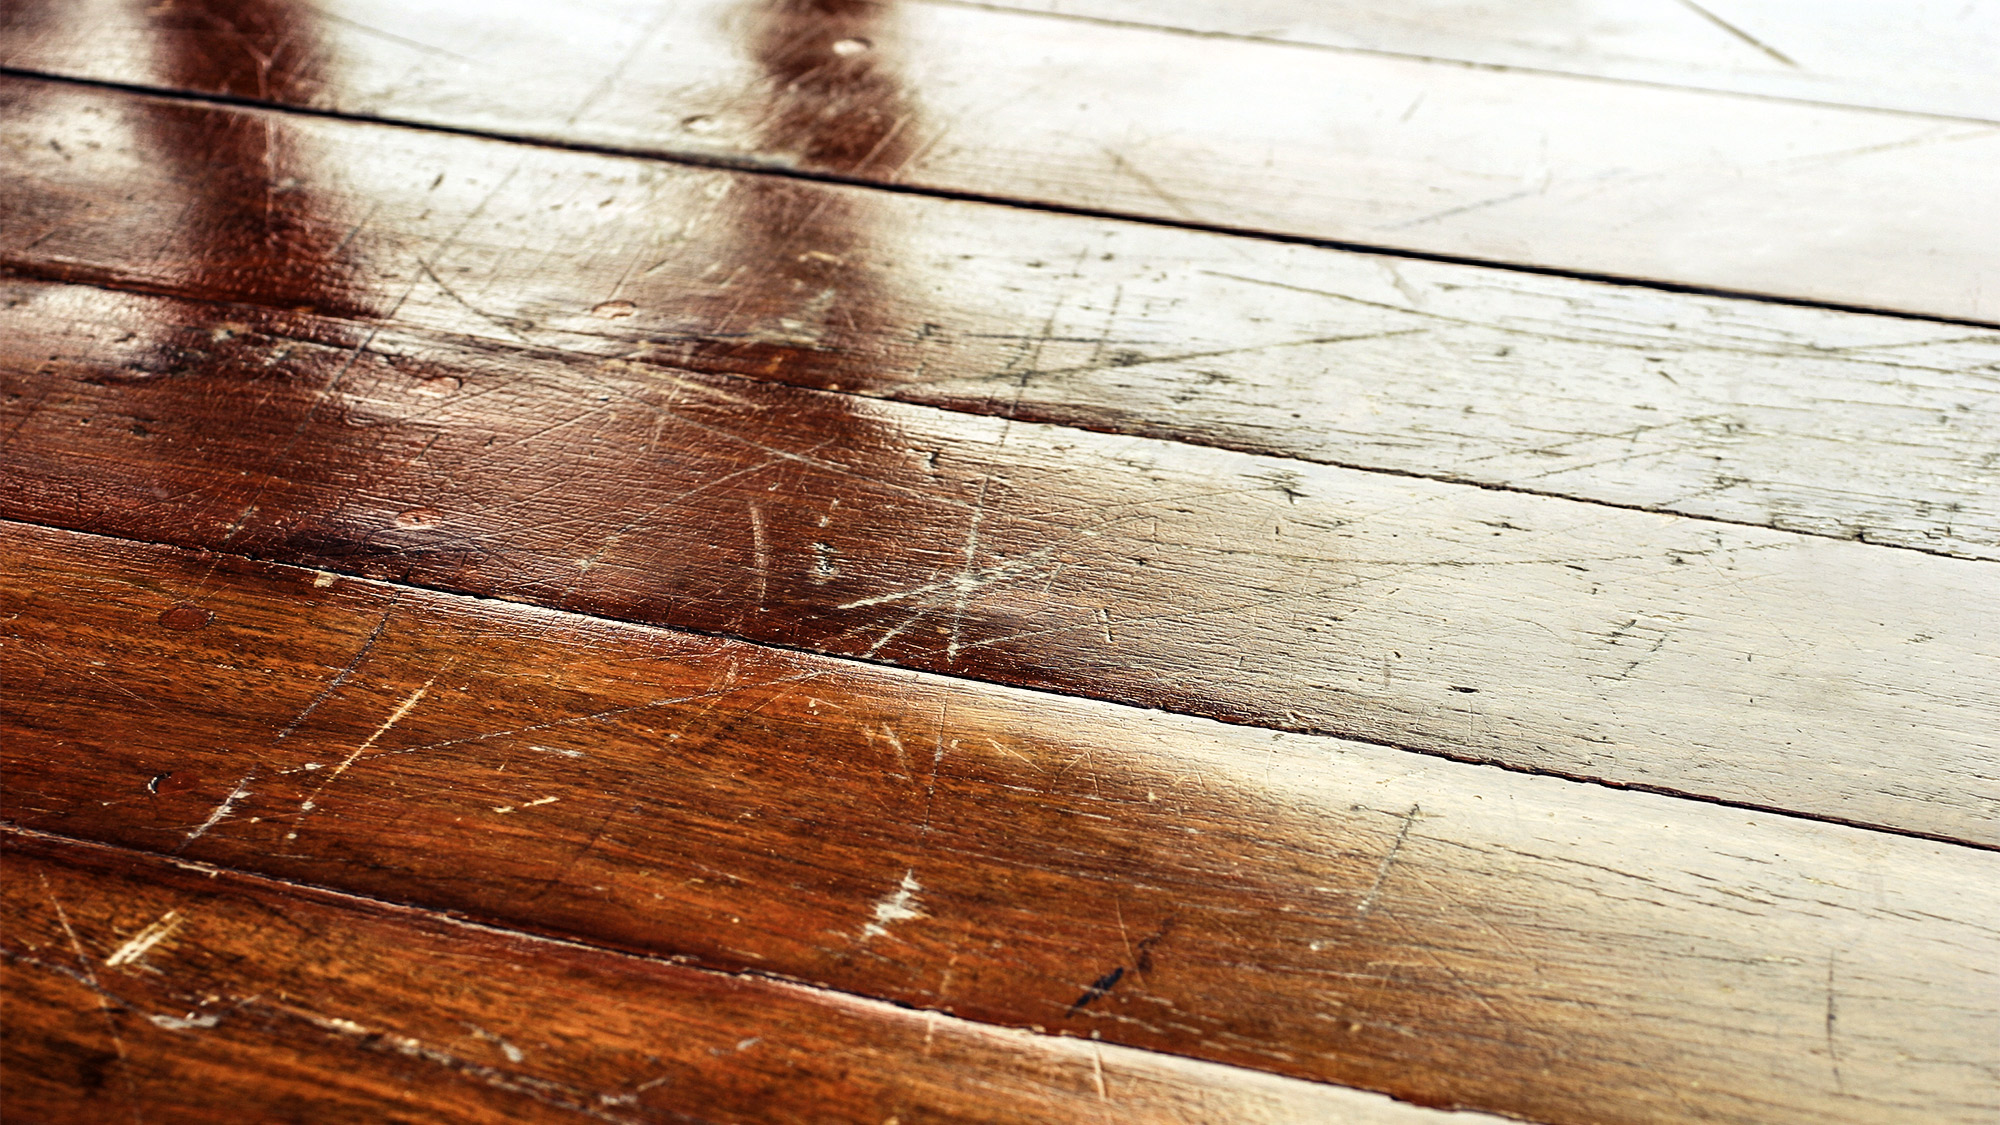 Removing Surface Scratches From Hardwood Floors Carpet